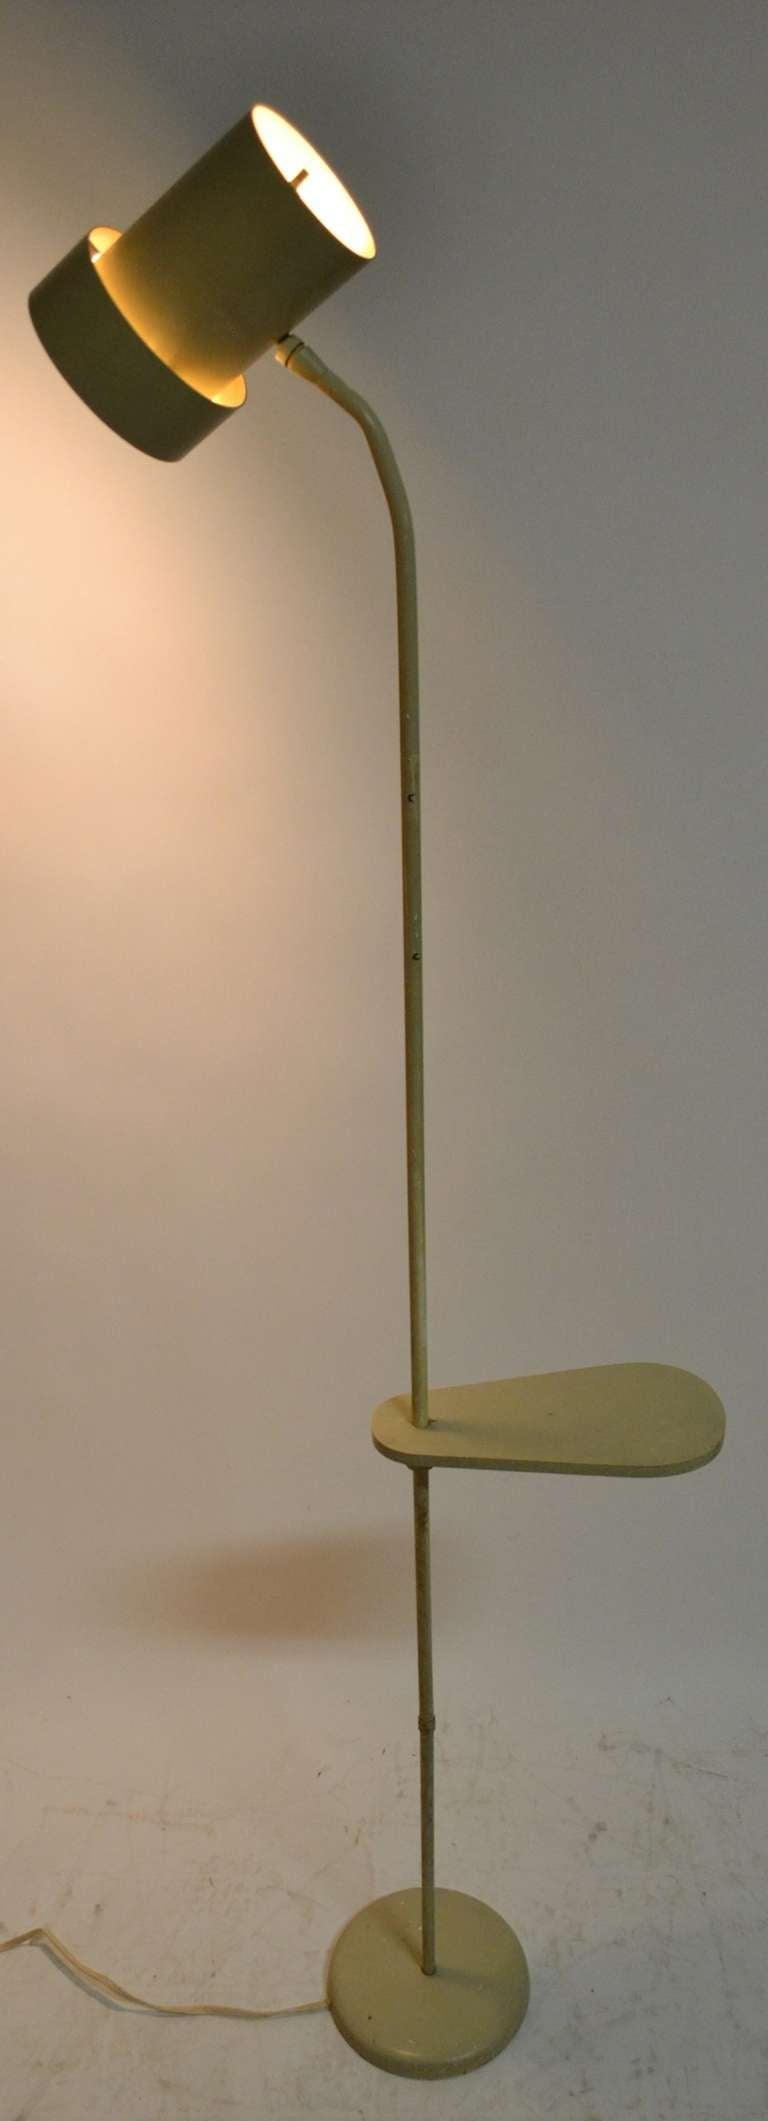 Unusual Possibly Unique Adjustable Floor Lamp at 1stdibs